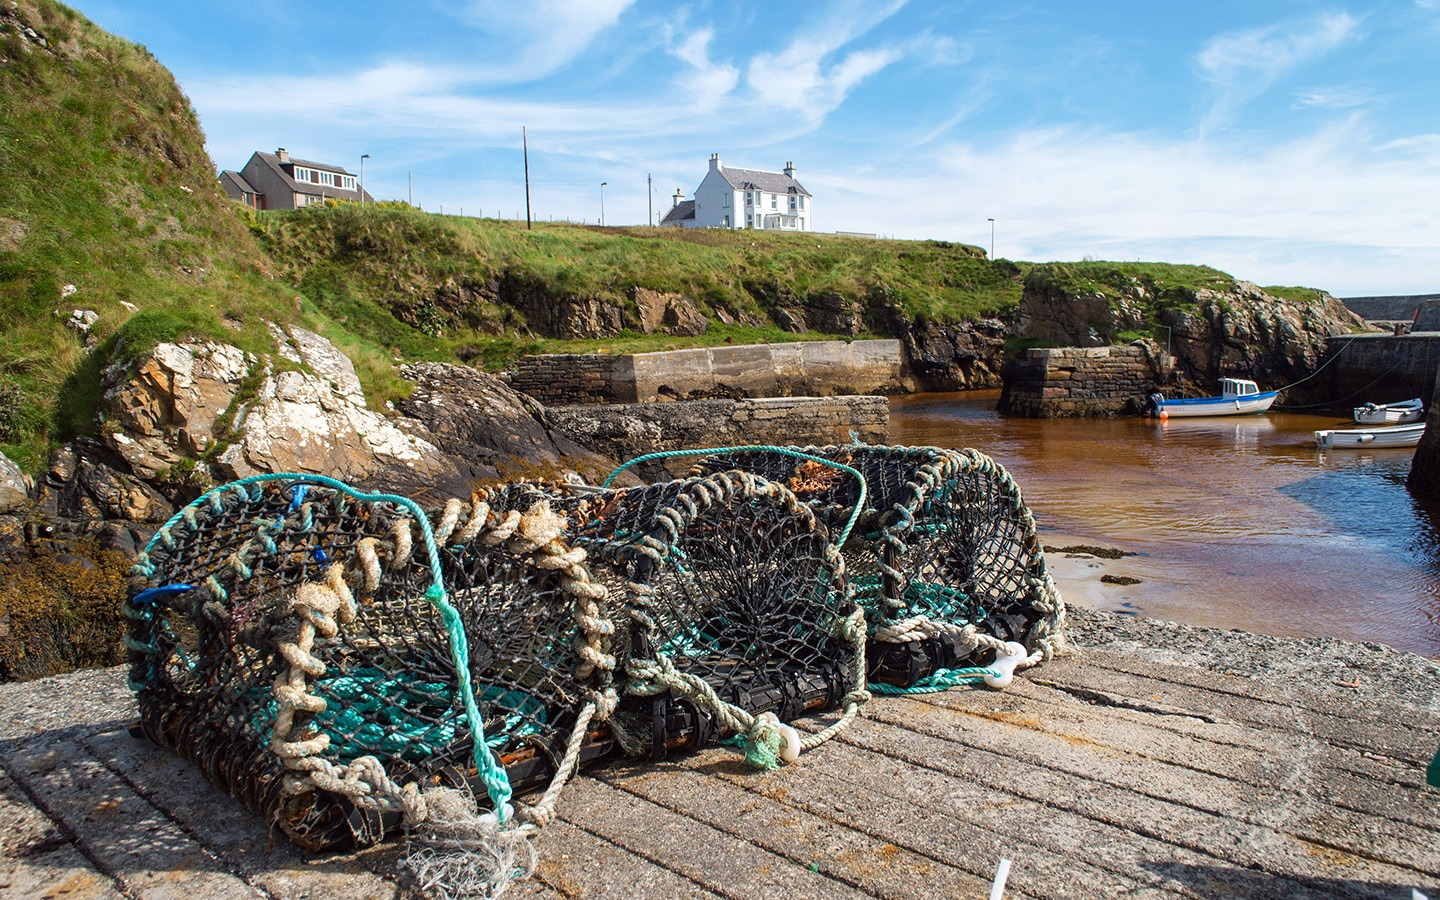 Lobster pots in the harbour at the Port of Ness, Outer Hebrides